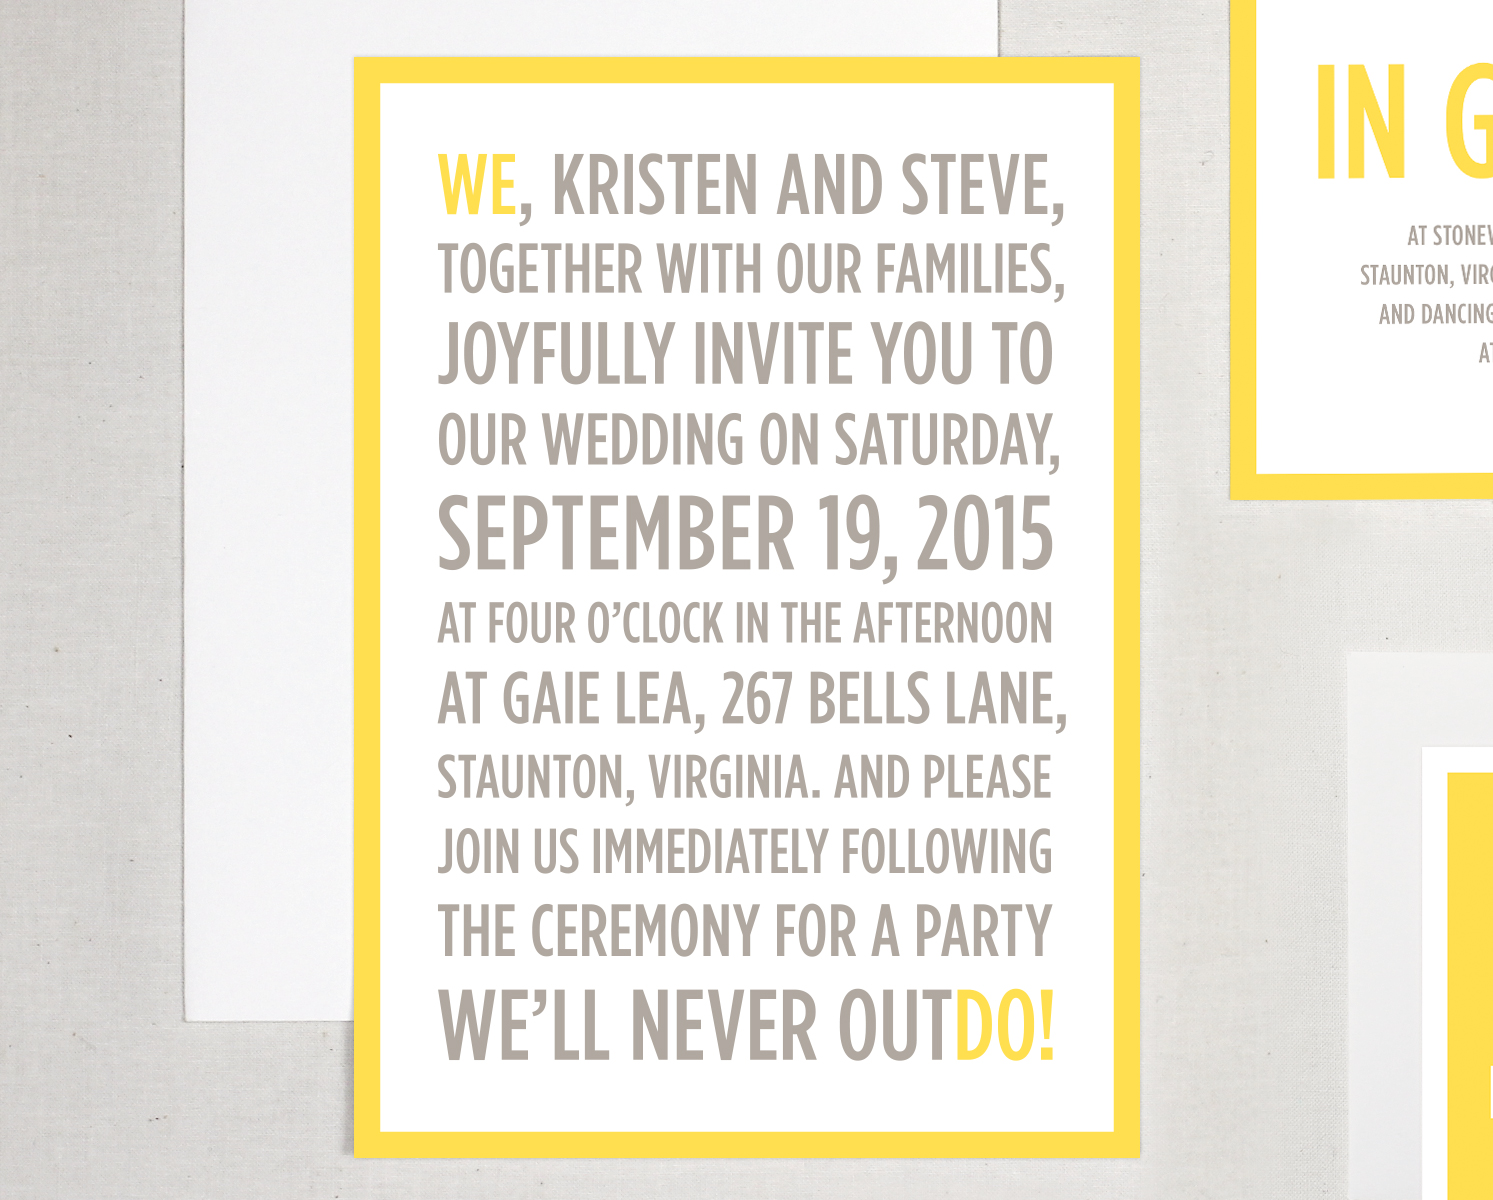 Letter19Design_WeJoyfullyDo_WeddingInvitation